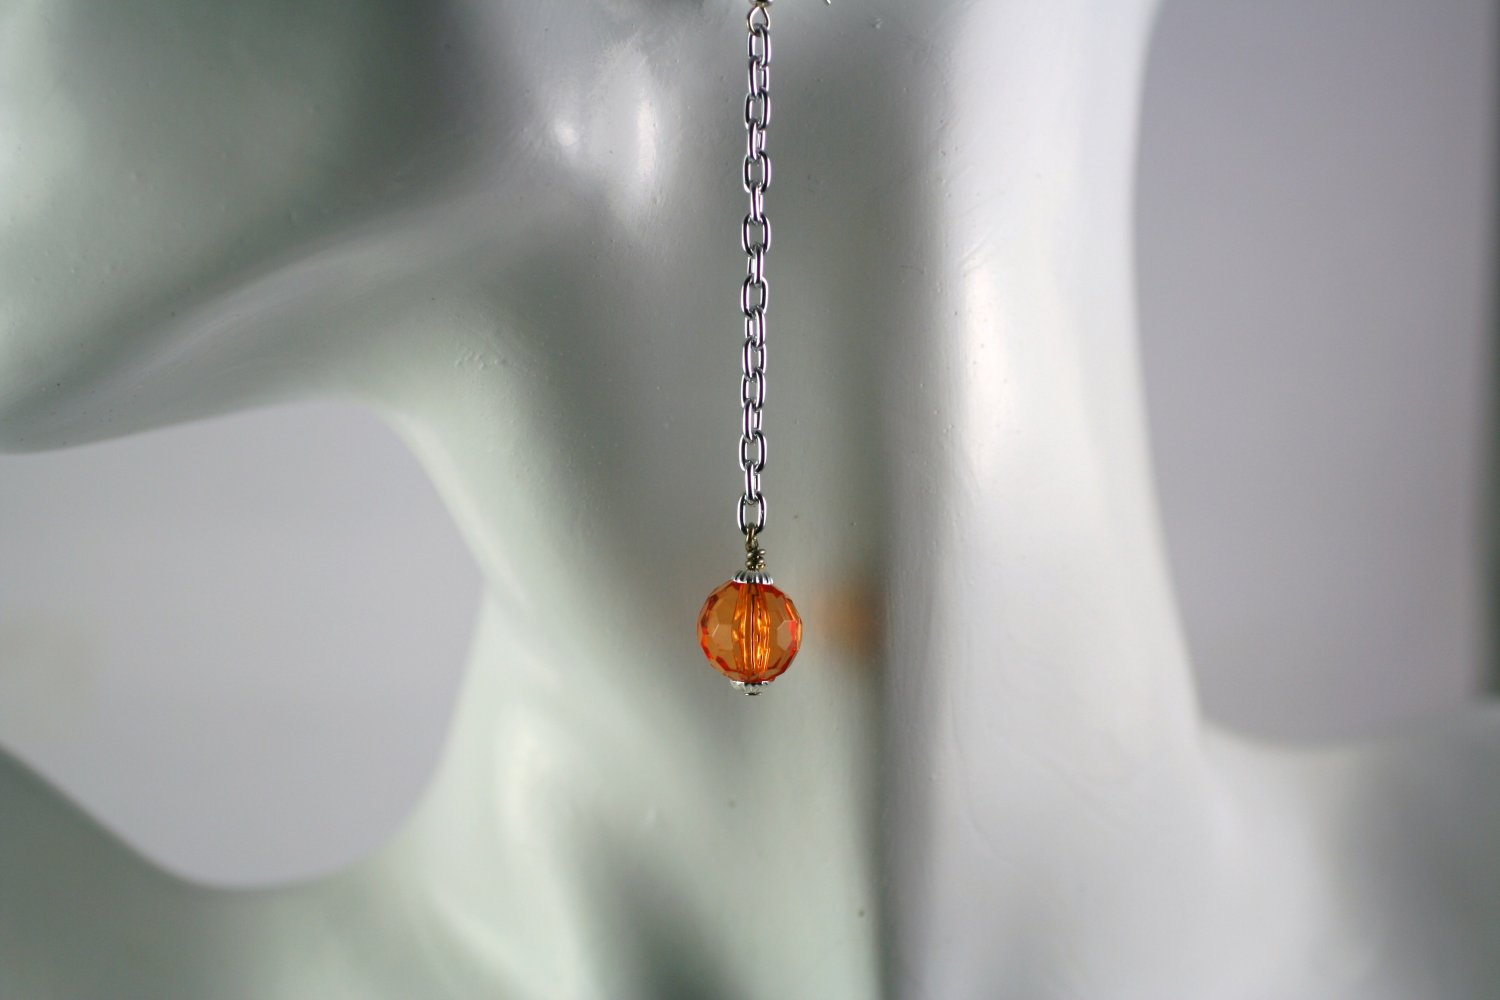 Silver Chain Drop Dangle Earrings with Orange Round Fauceted Beads Handcrafted Jewelry